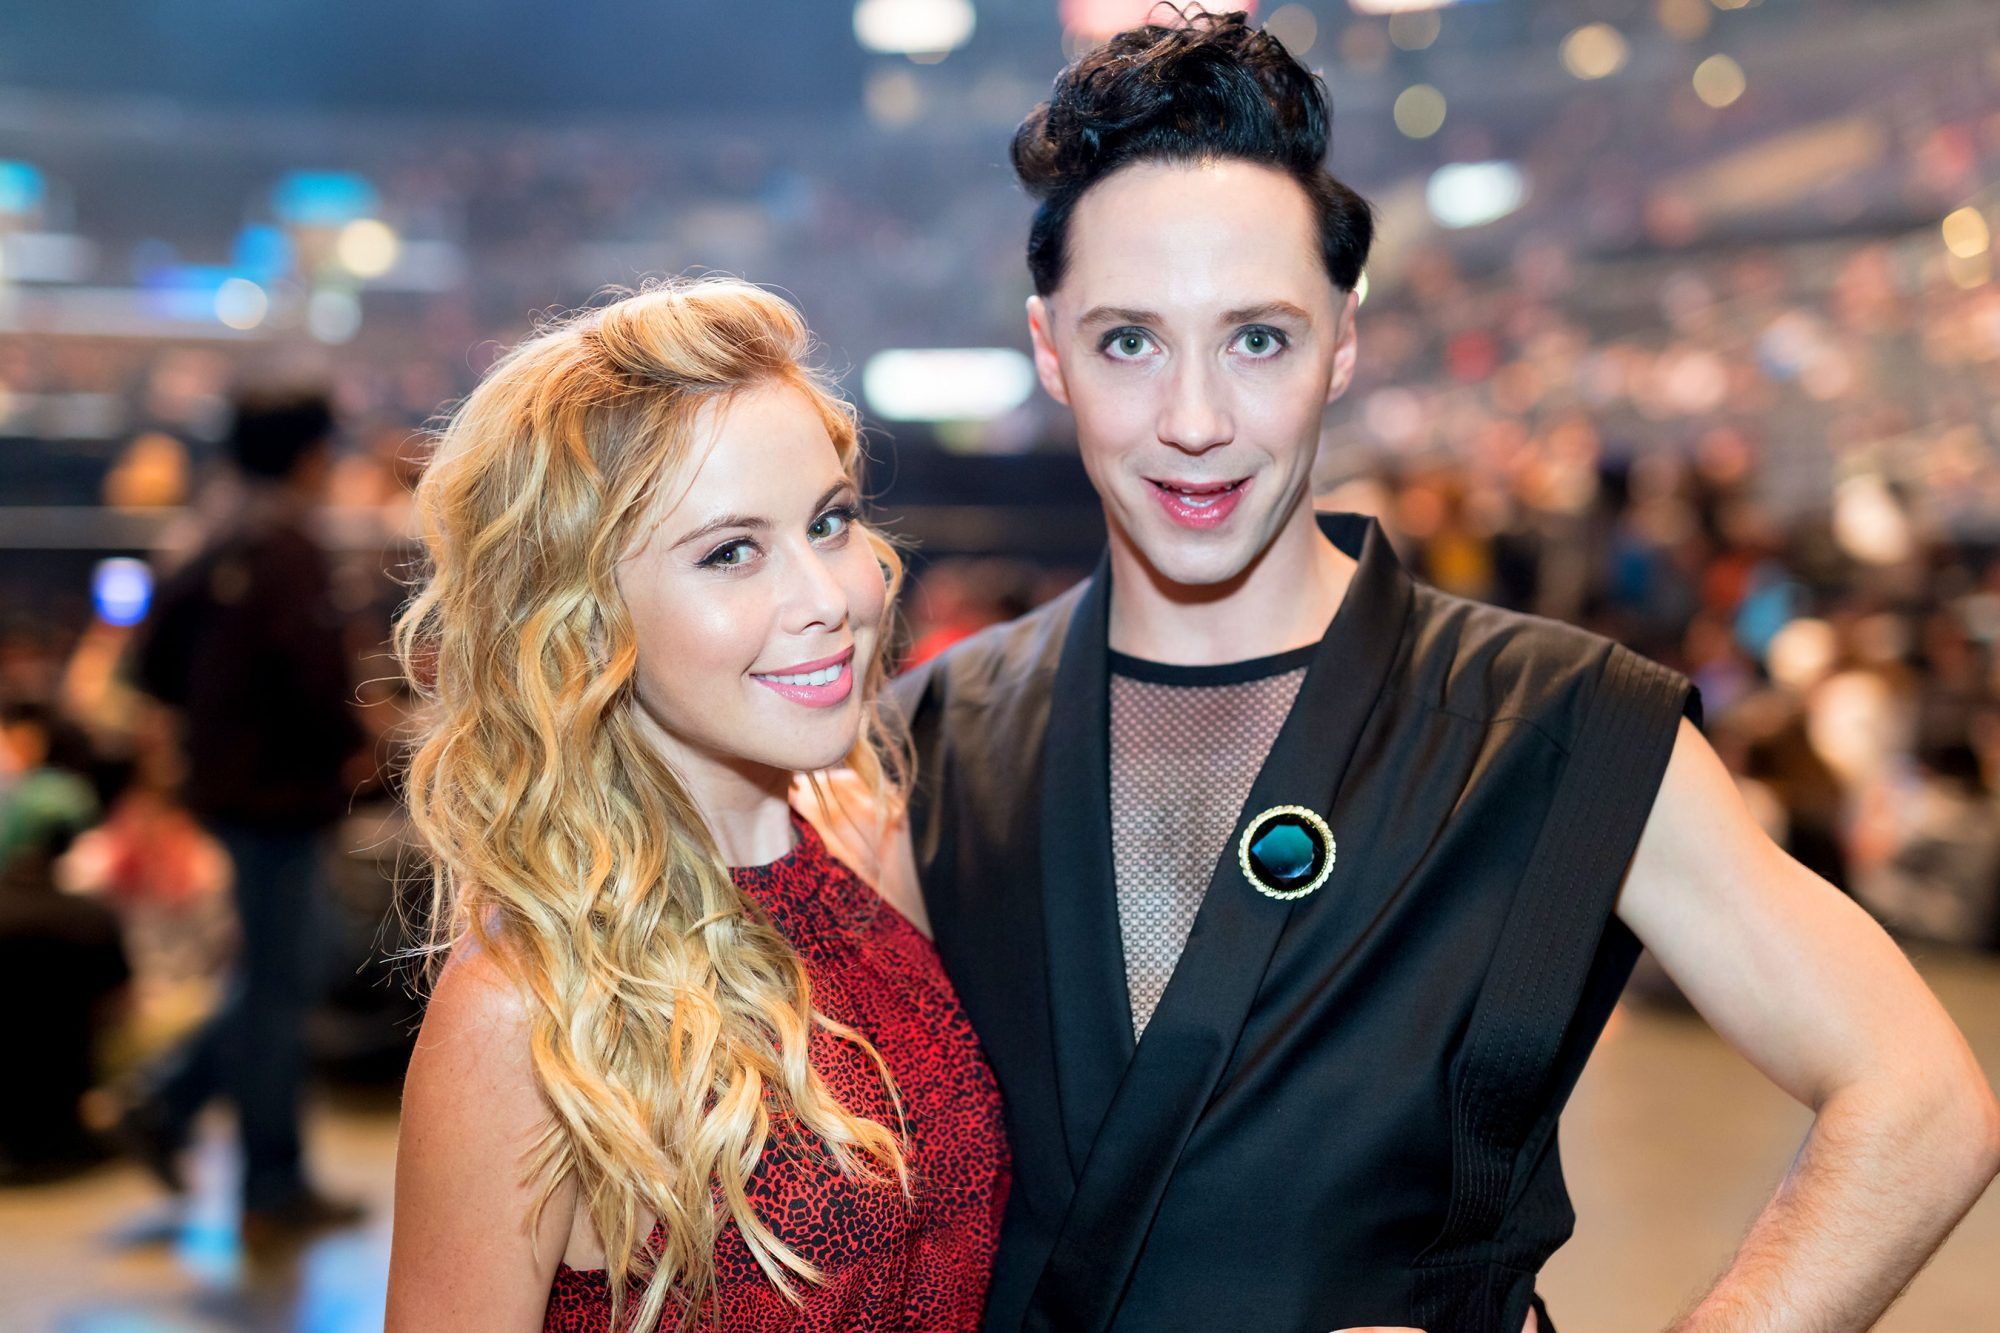 It's a party in Team USA with these Olympian hosting tips from Tara Lipinski and Johnny Weir